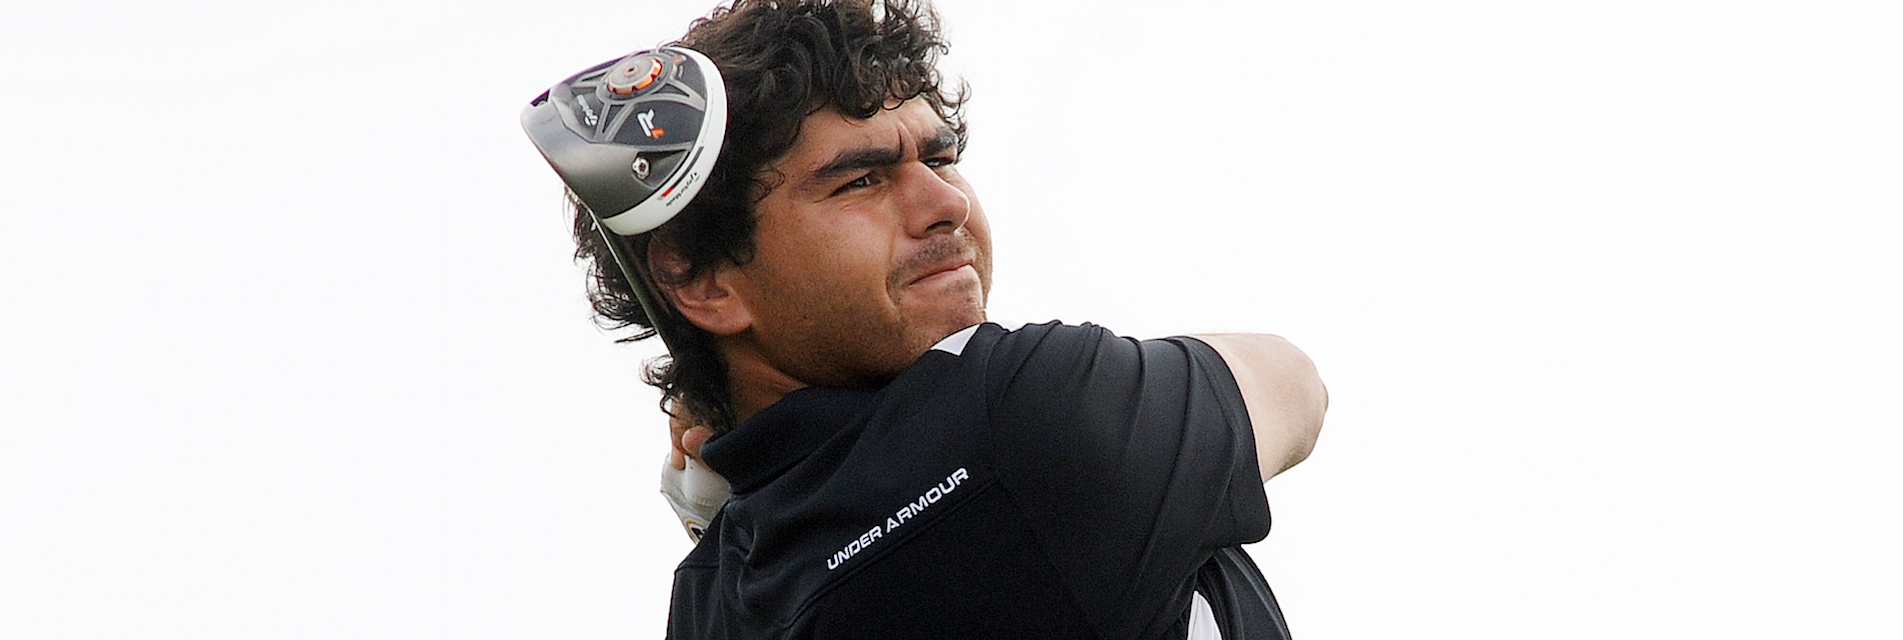 Nelson Ledesma  (Photo by Enrique Berardi/PGA TOUR)